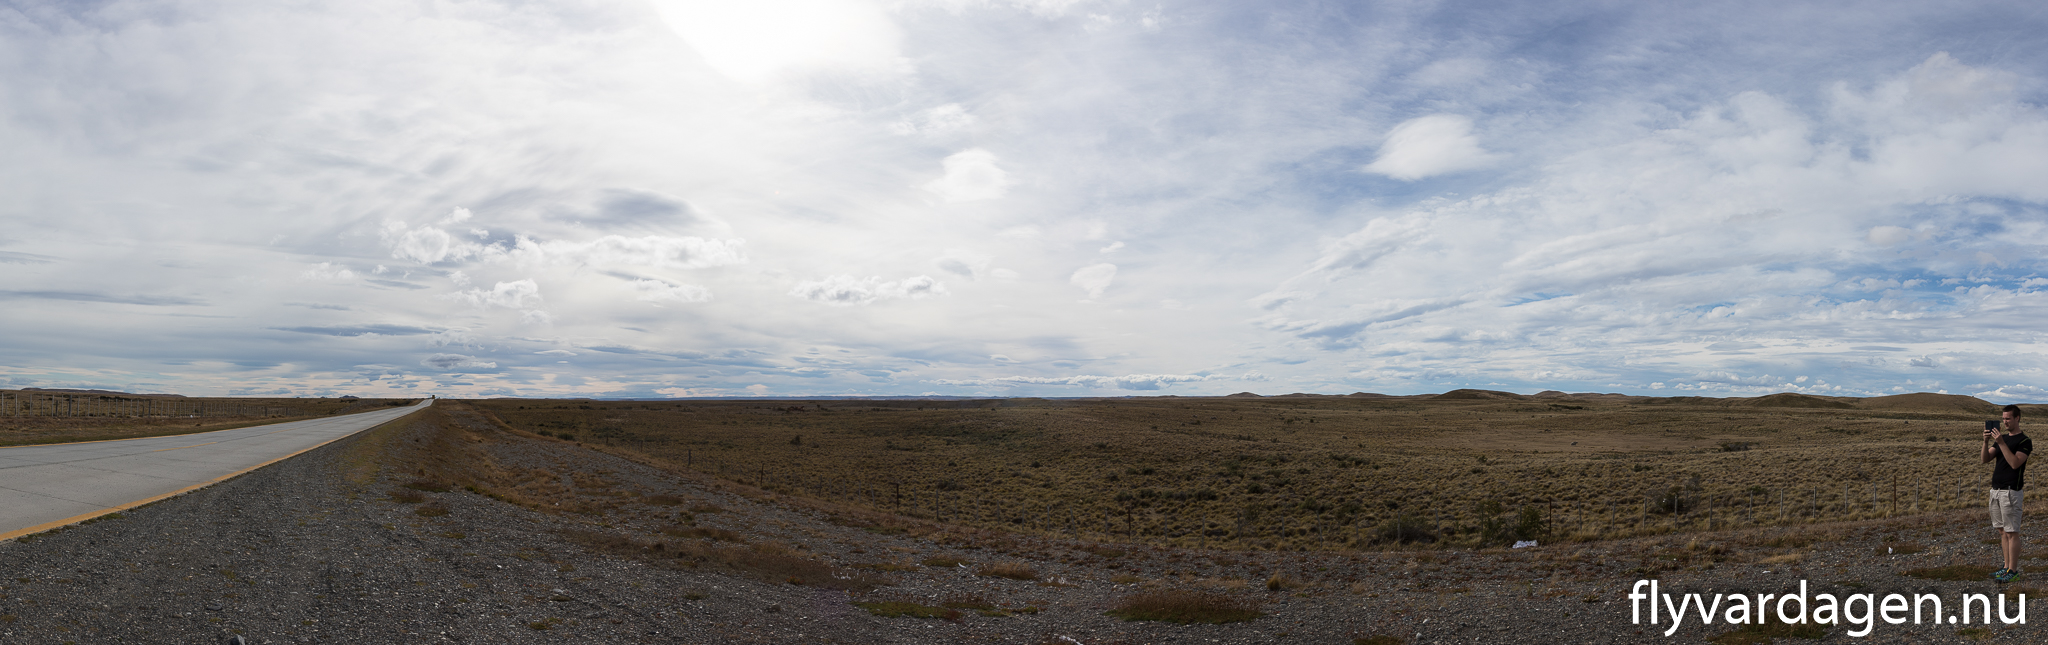 _C9A1144-Pano